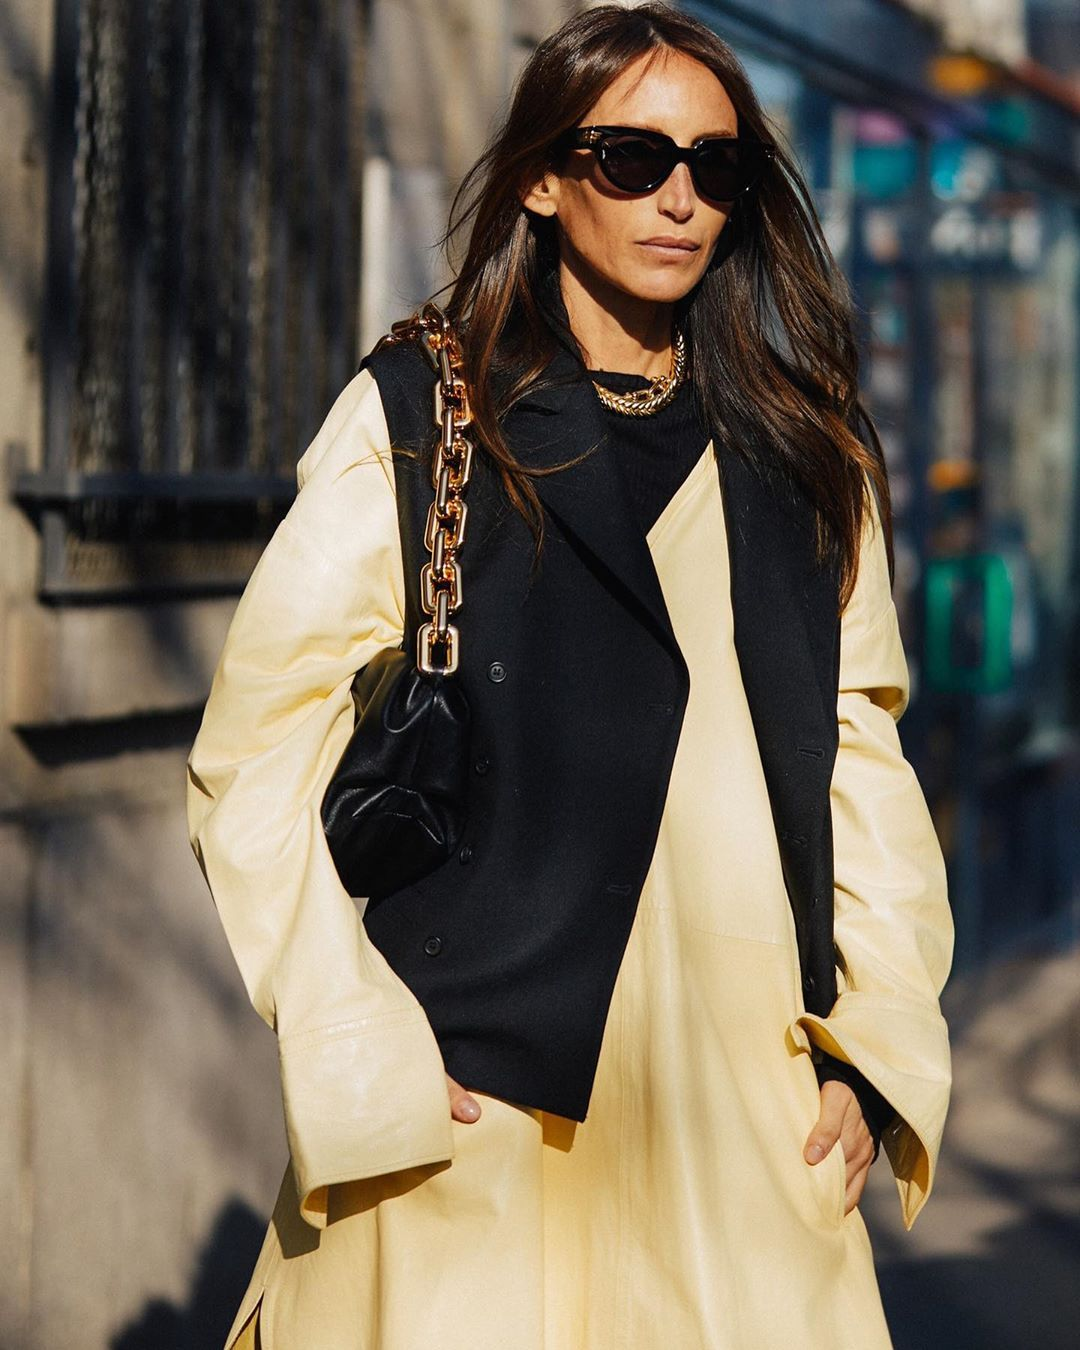 chloe-harrouche-vest-layering-outfit-paris-fashion-week-fall-2020